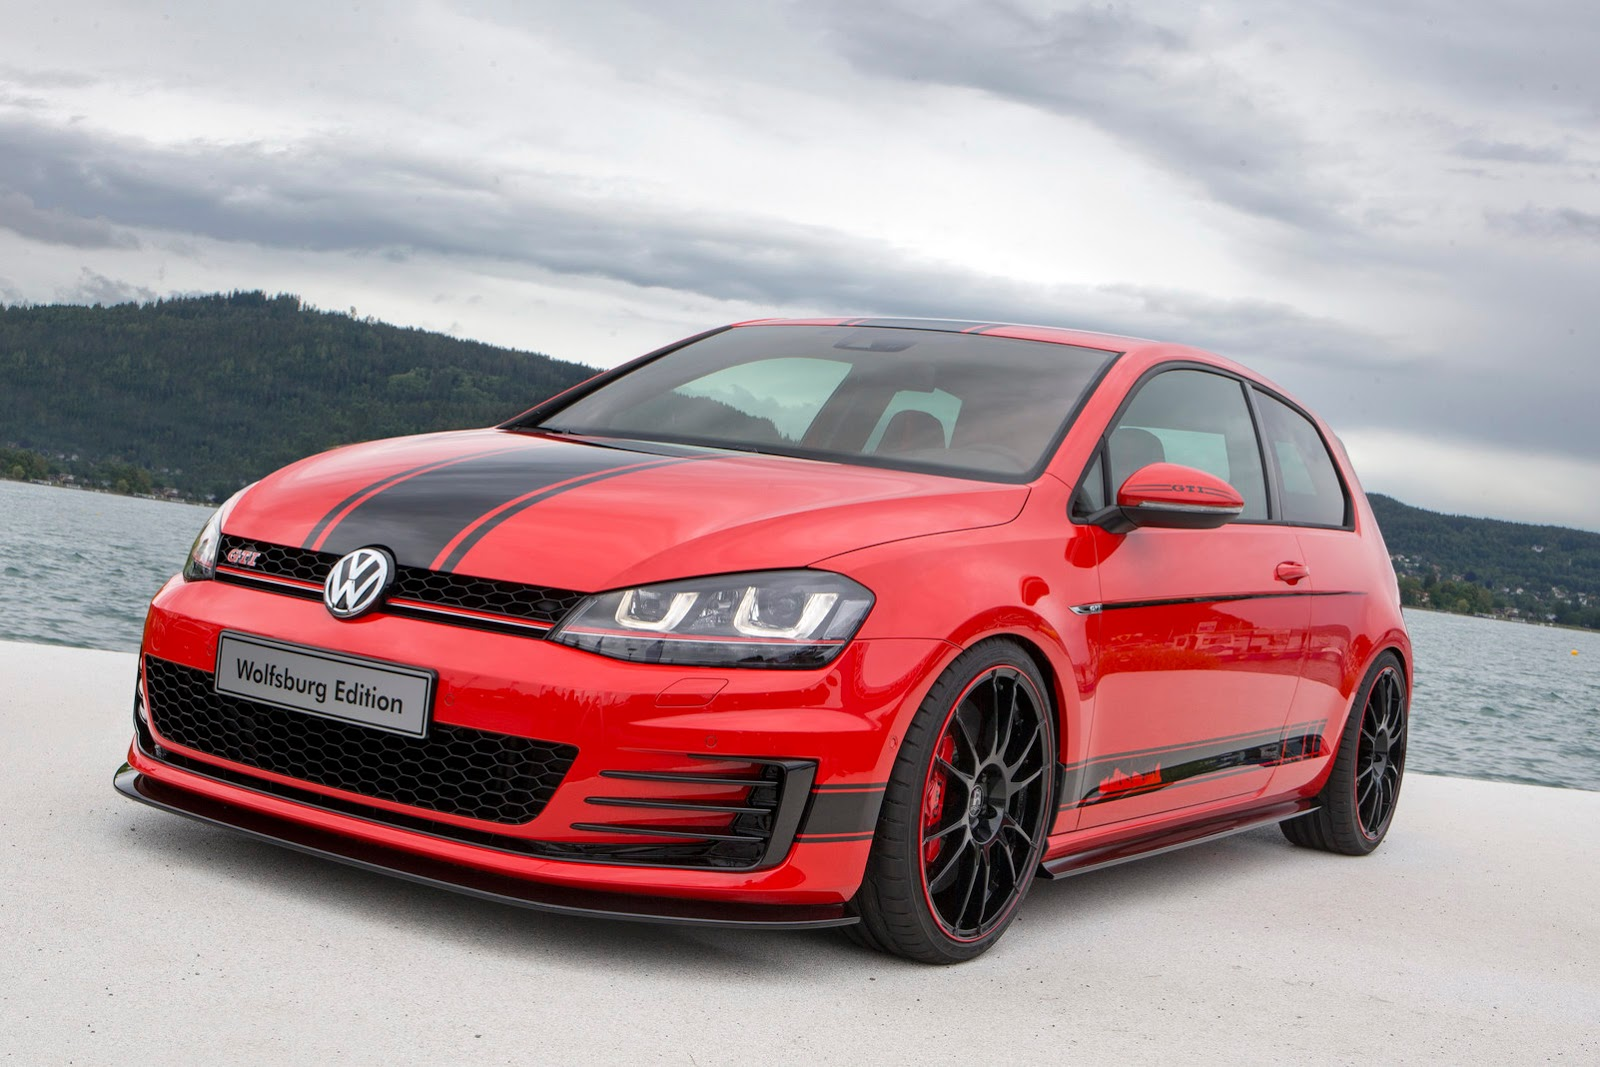 380 hp golf gti wolfsburg edition revealed at worthersee. Black Bedroom Furniture Sets. Home Design Ideas